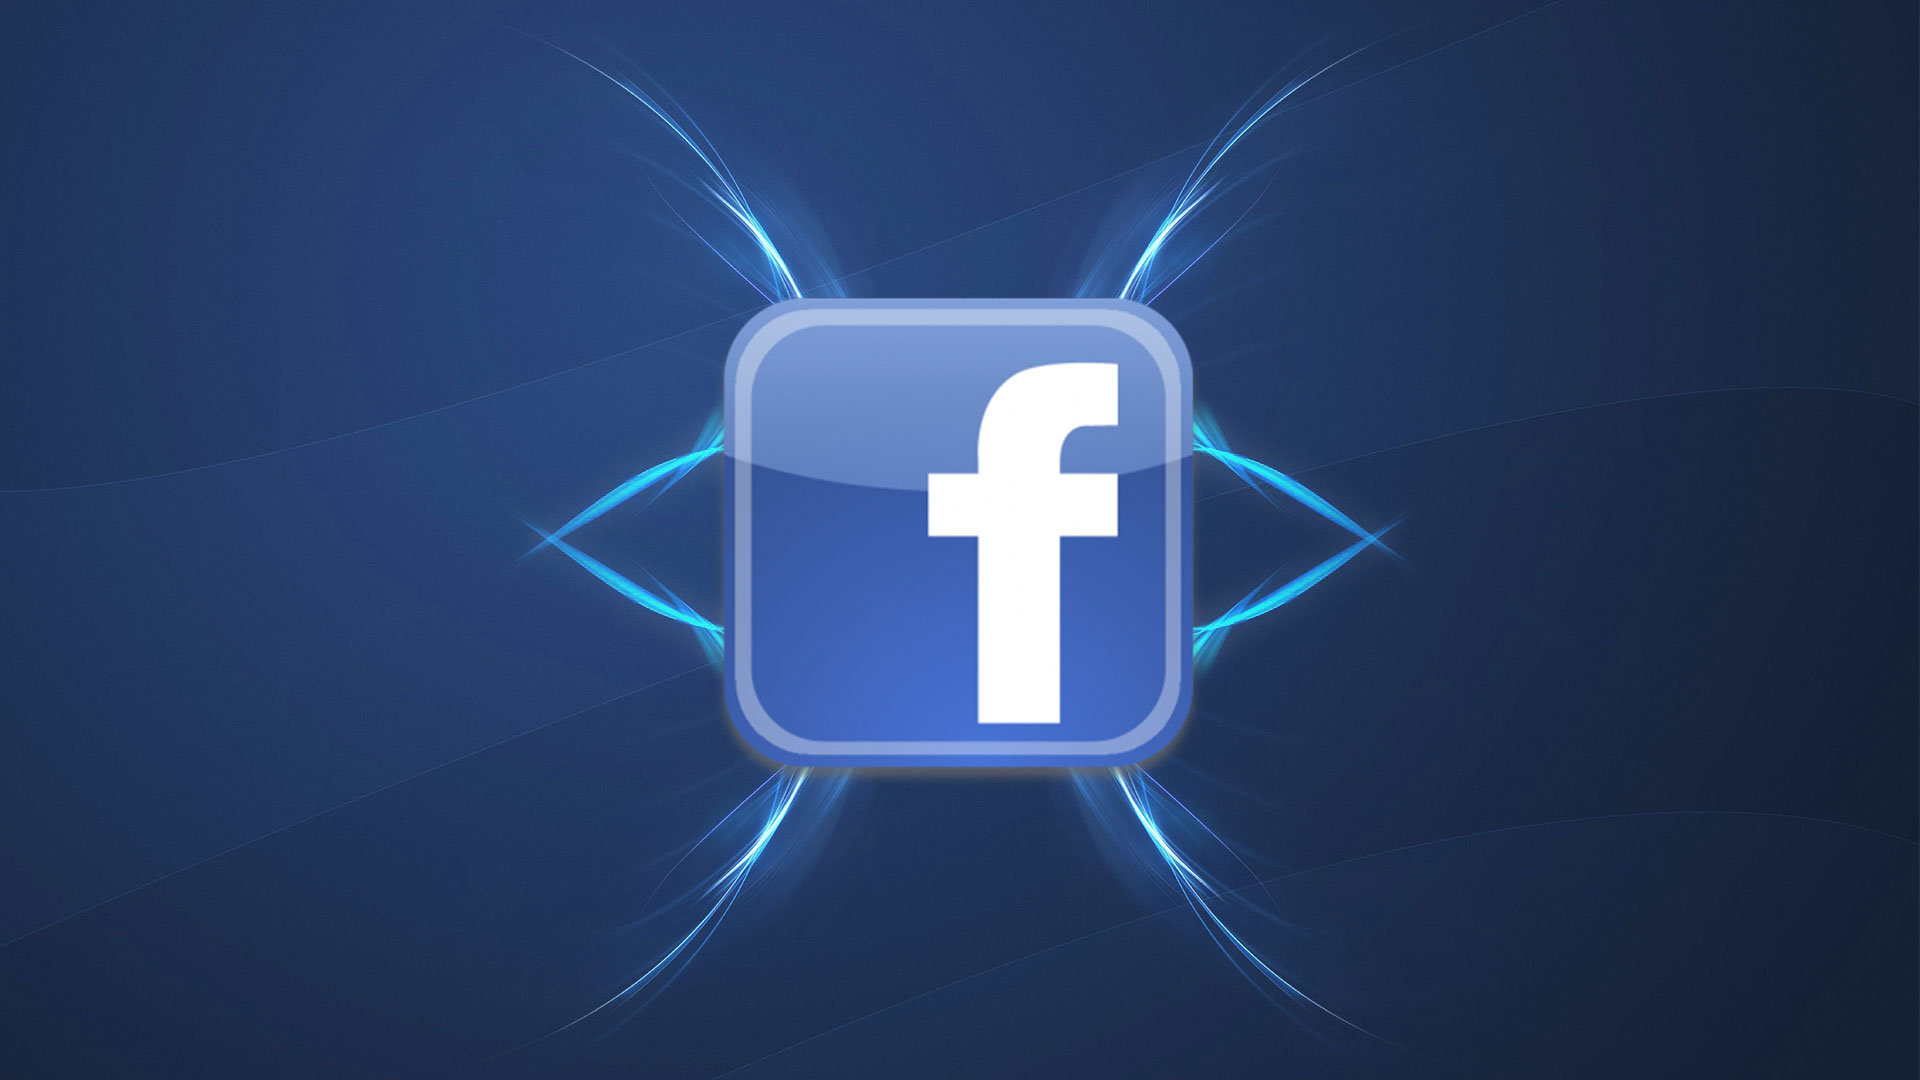 Facebook Wallpapers Backgrounds Hd 09